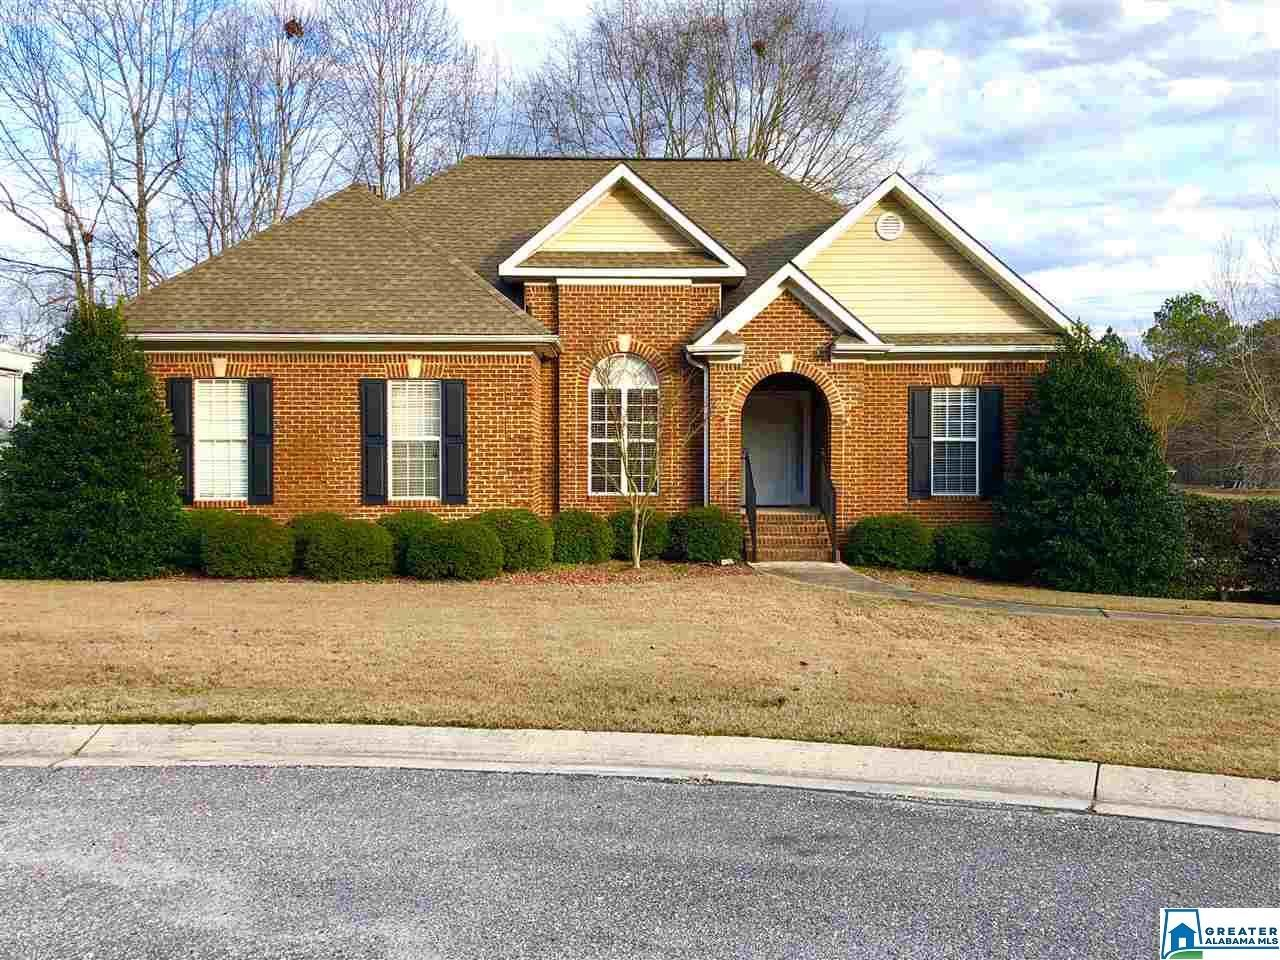 1501 SHELBY FOREST LN, Chelsea, AL 35043 - #: 871424